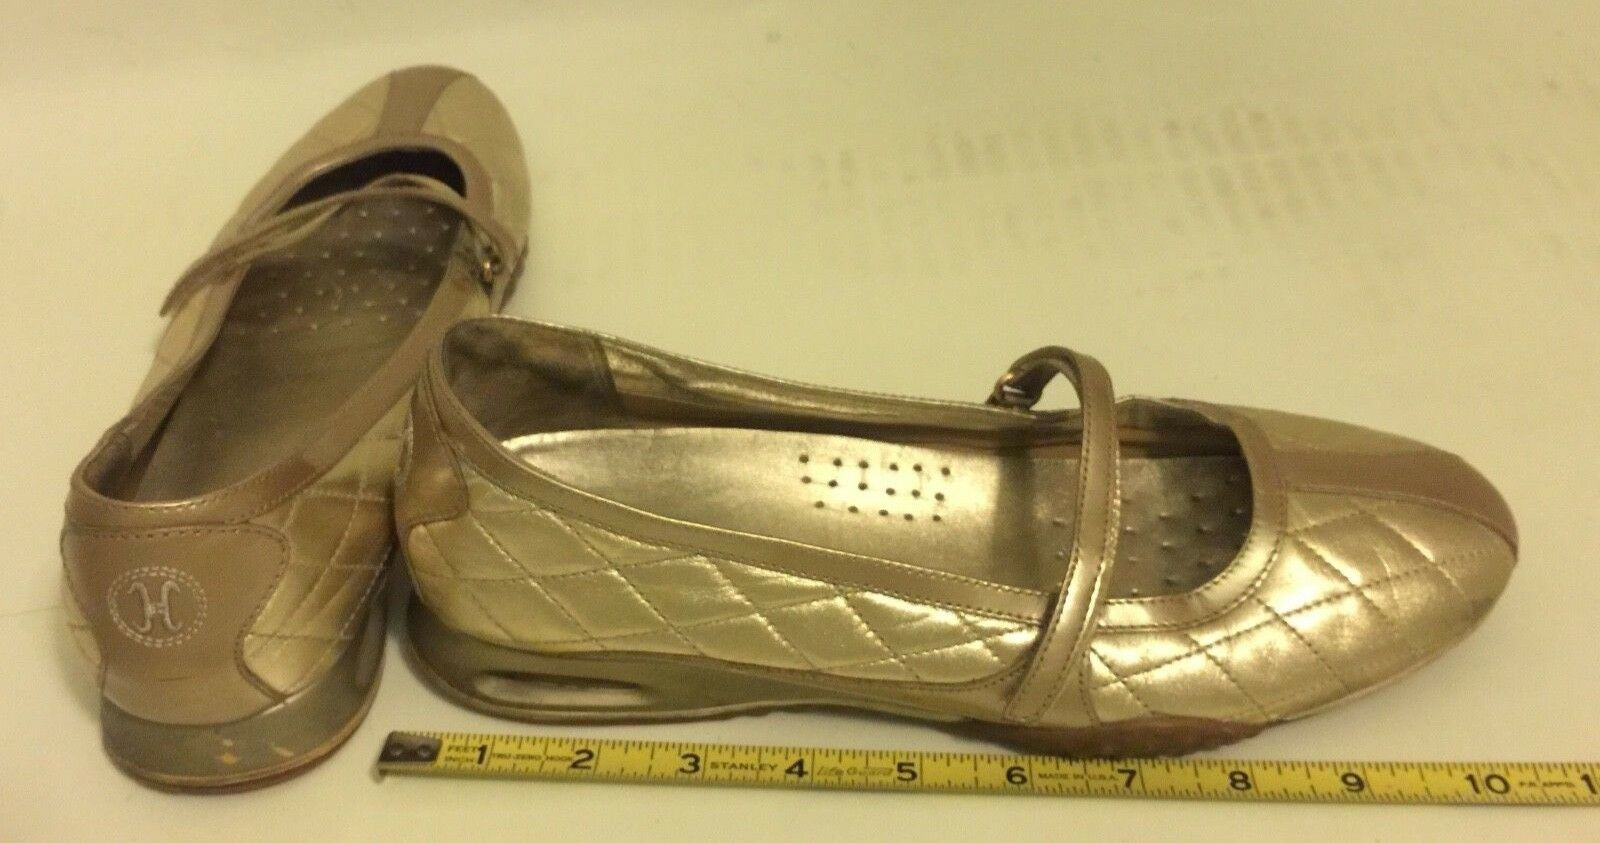 Cole Haan NikeAir Women's 9 US US US gold, Adjustable Velcro-Strap Flats, Mary Janes 2f9ab0